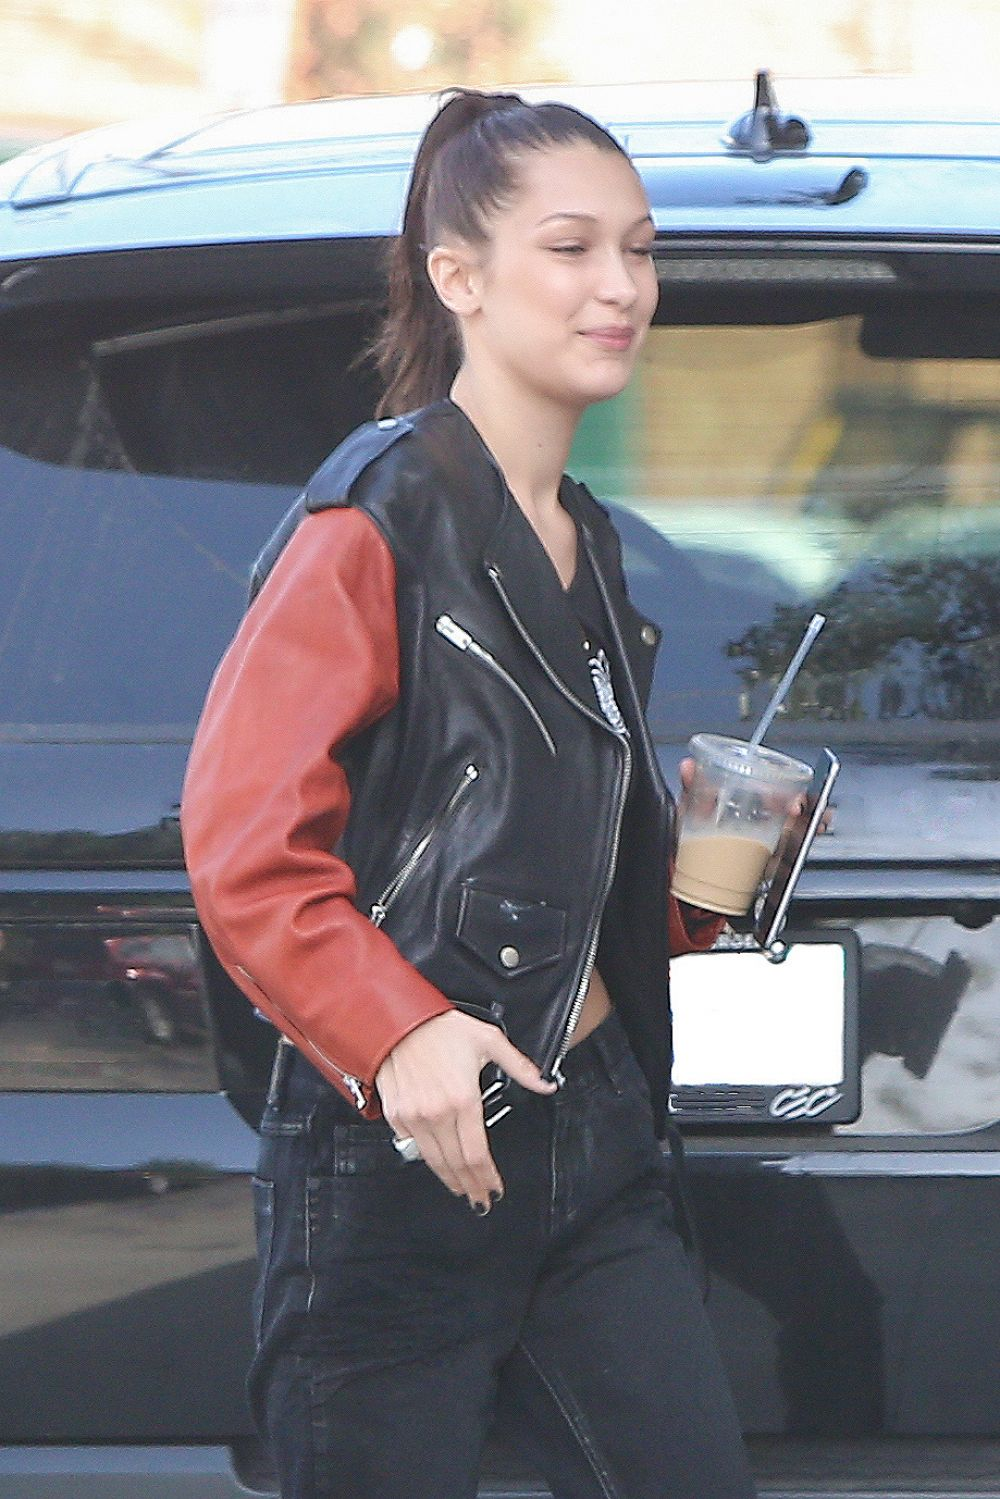 BELLA HADID Arrives at Chrome Hearts Offices in Los Angeles 12/14/2016